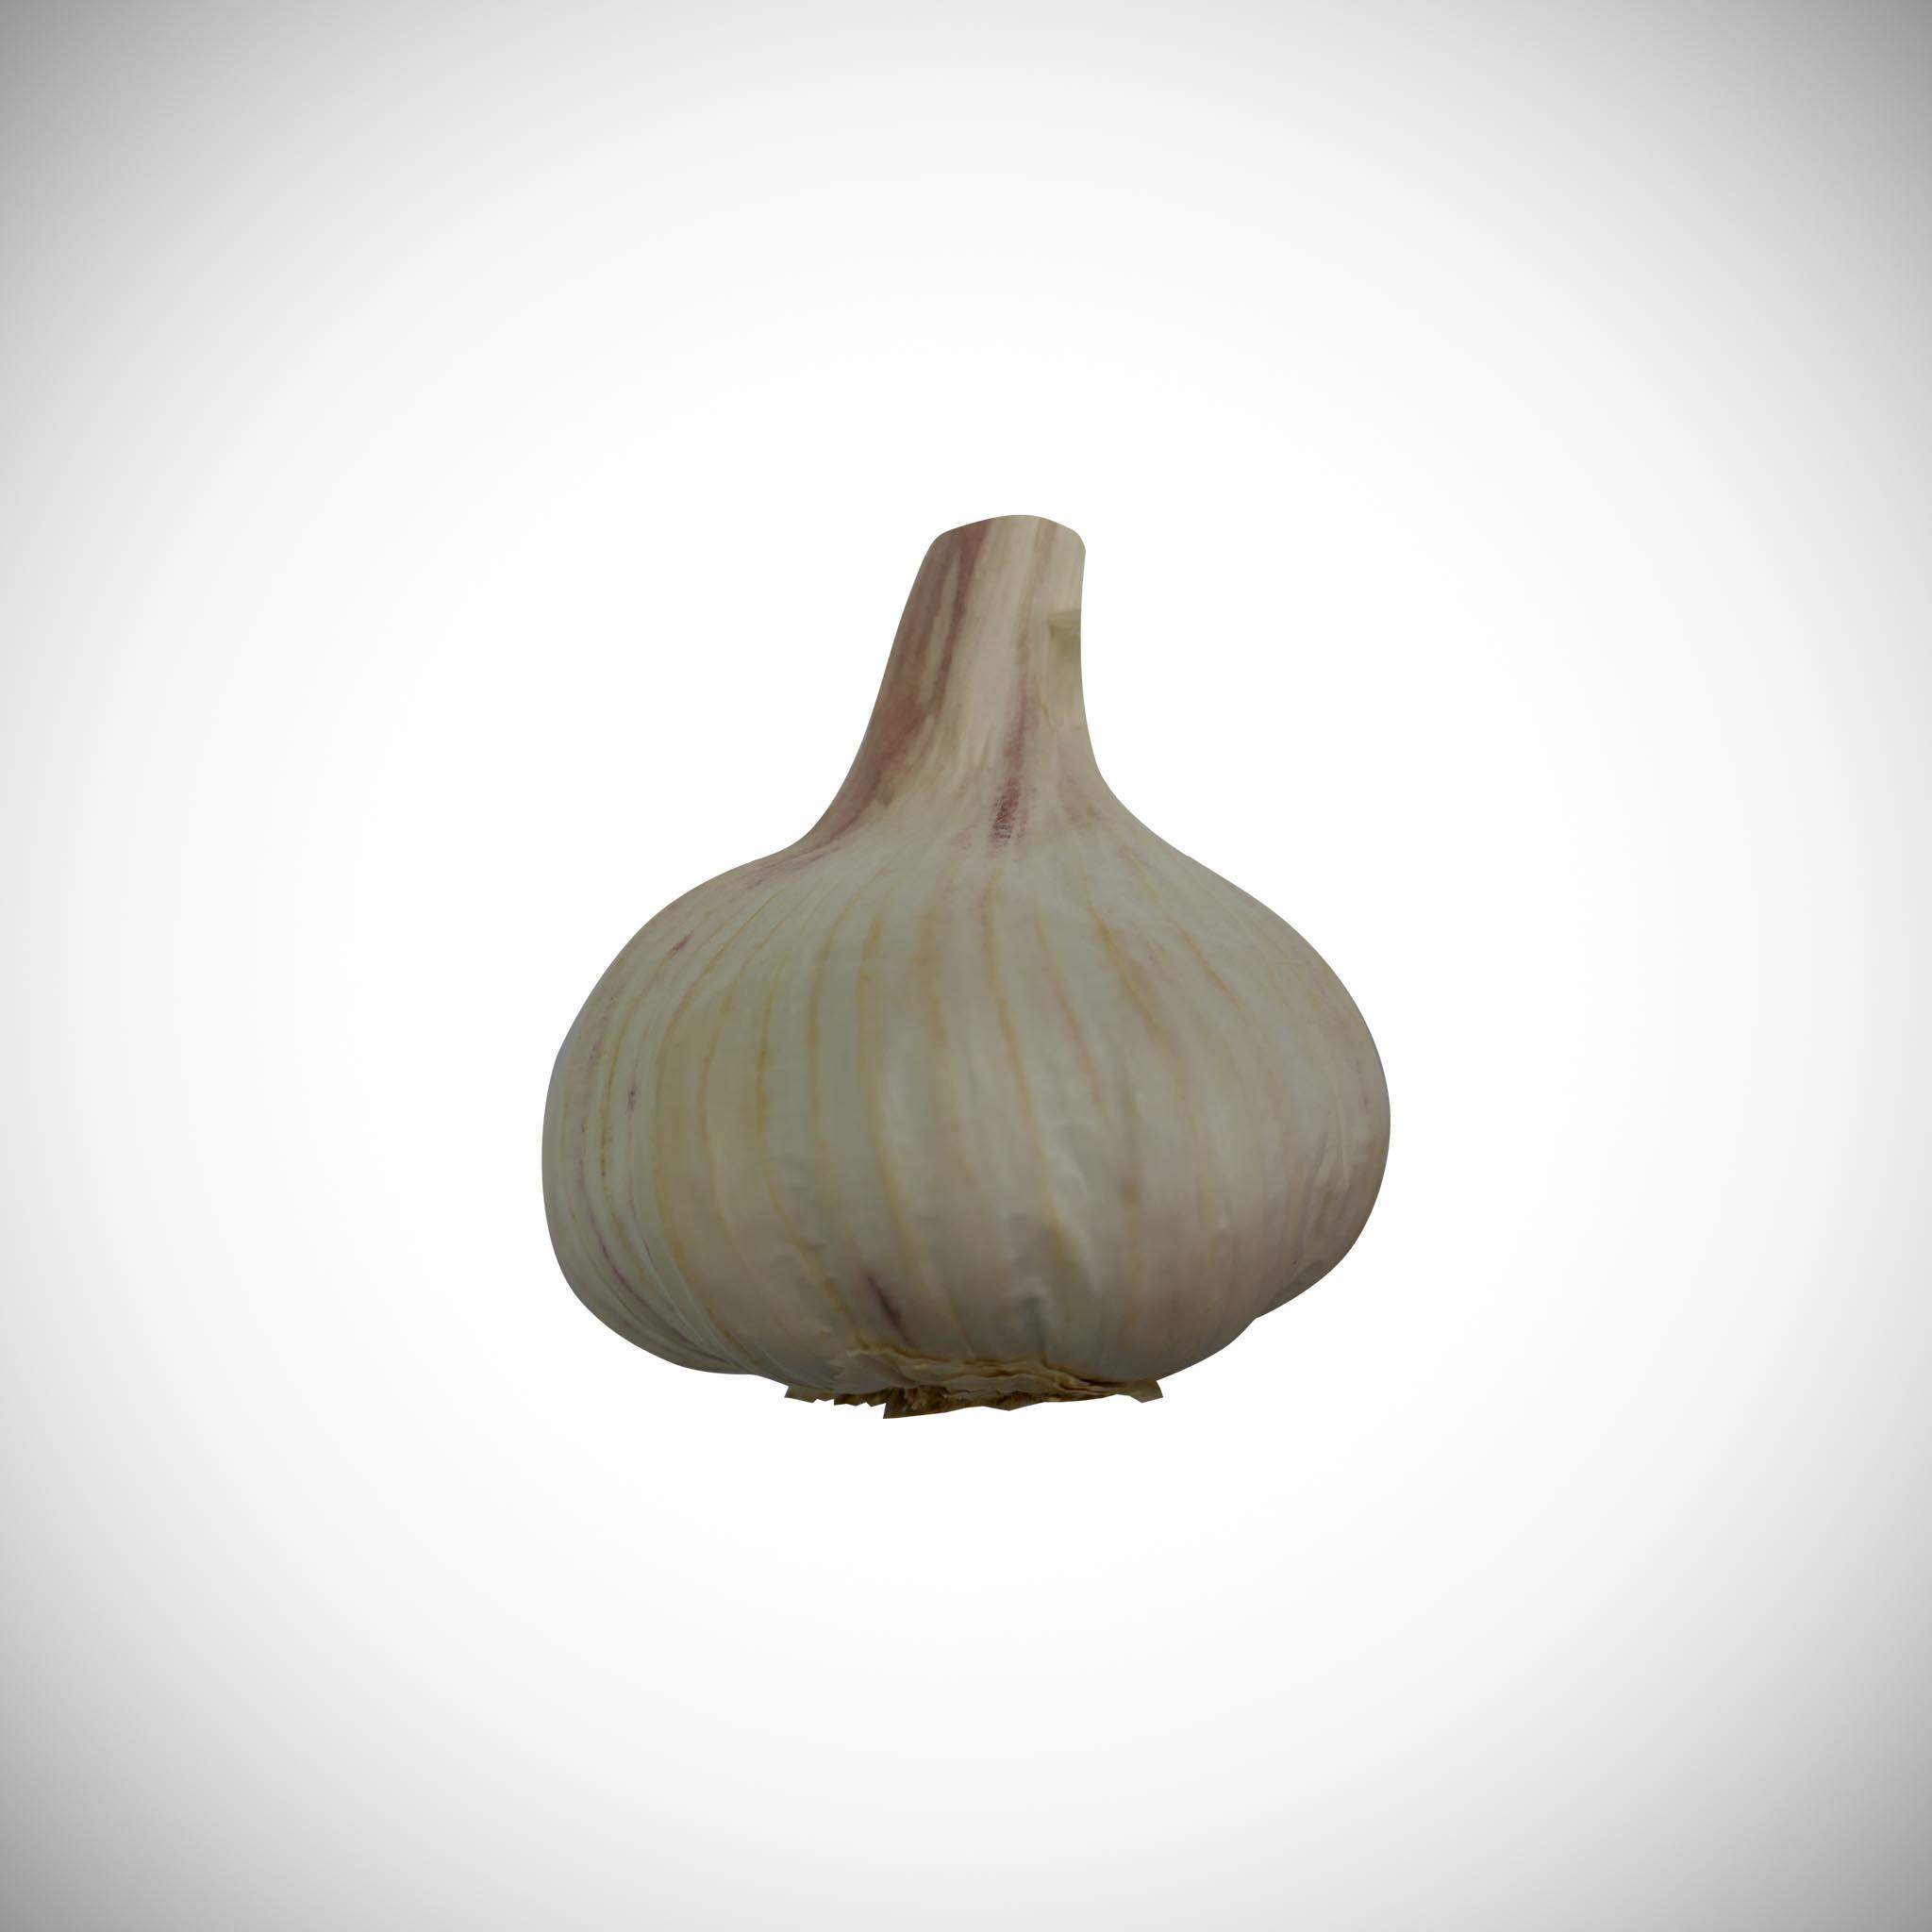 Loose Garlic